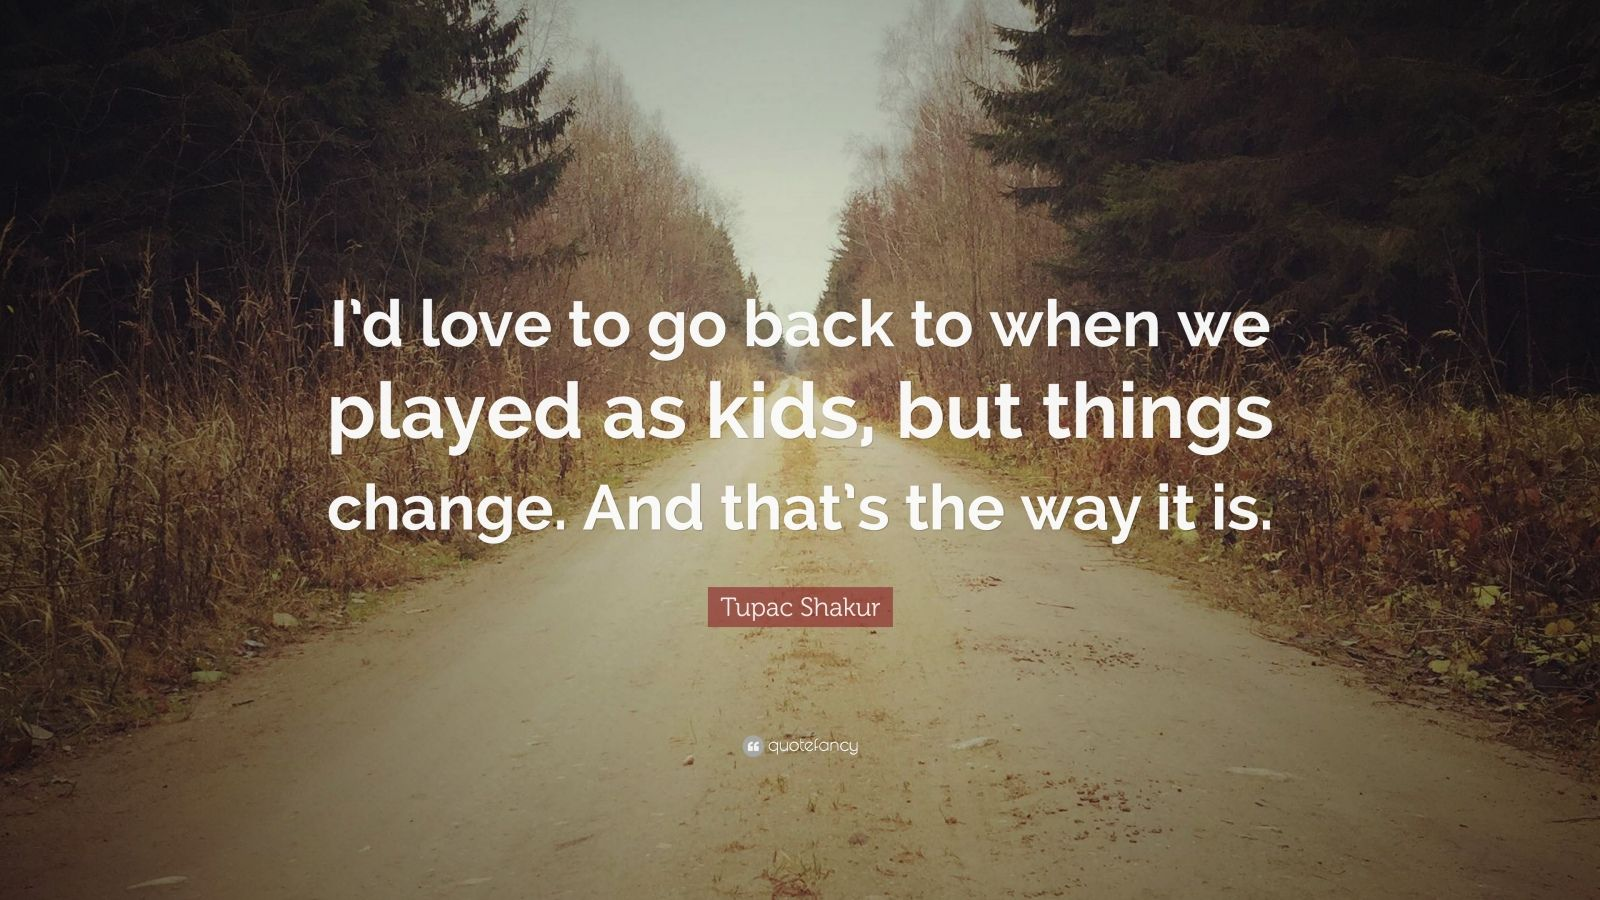 "Going Back To My Old Ways Quotes: Tupac Shakur Quote: ""I'd Love To Go Back To When We Played"